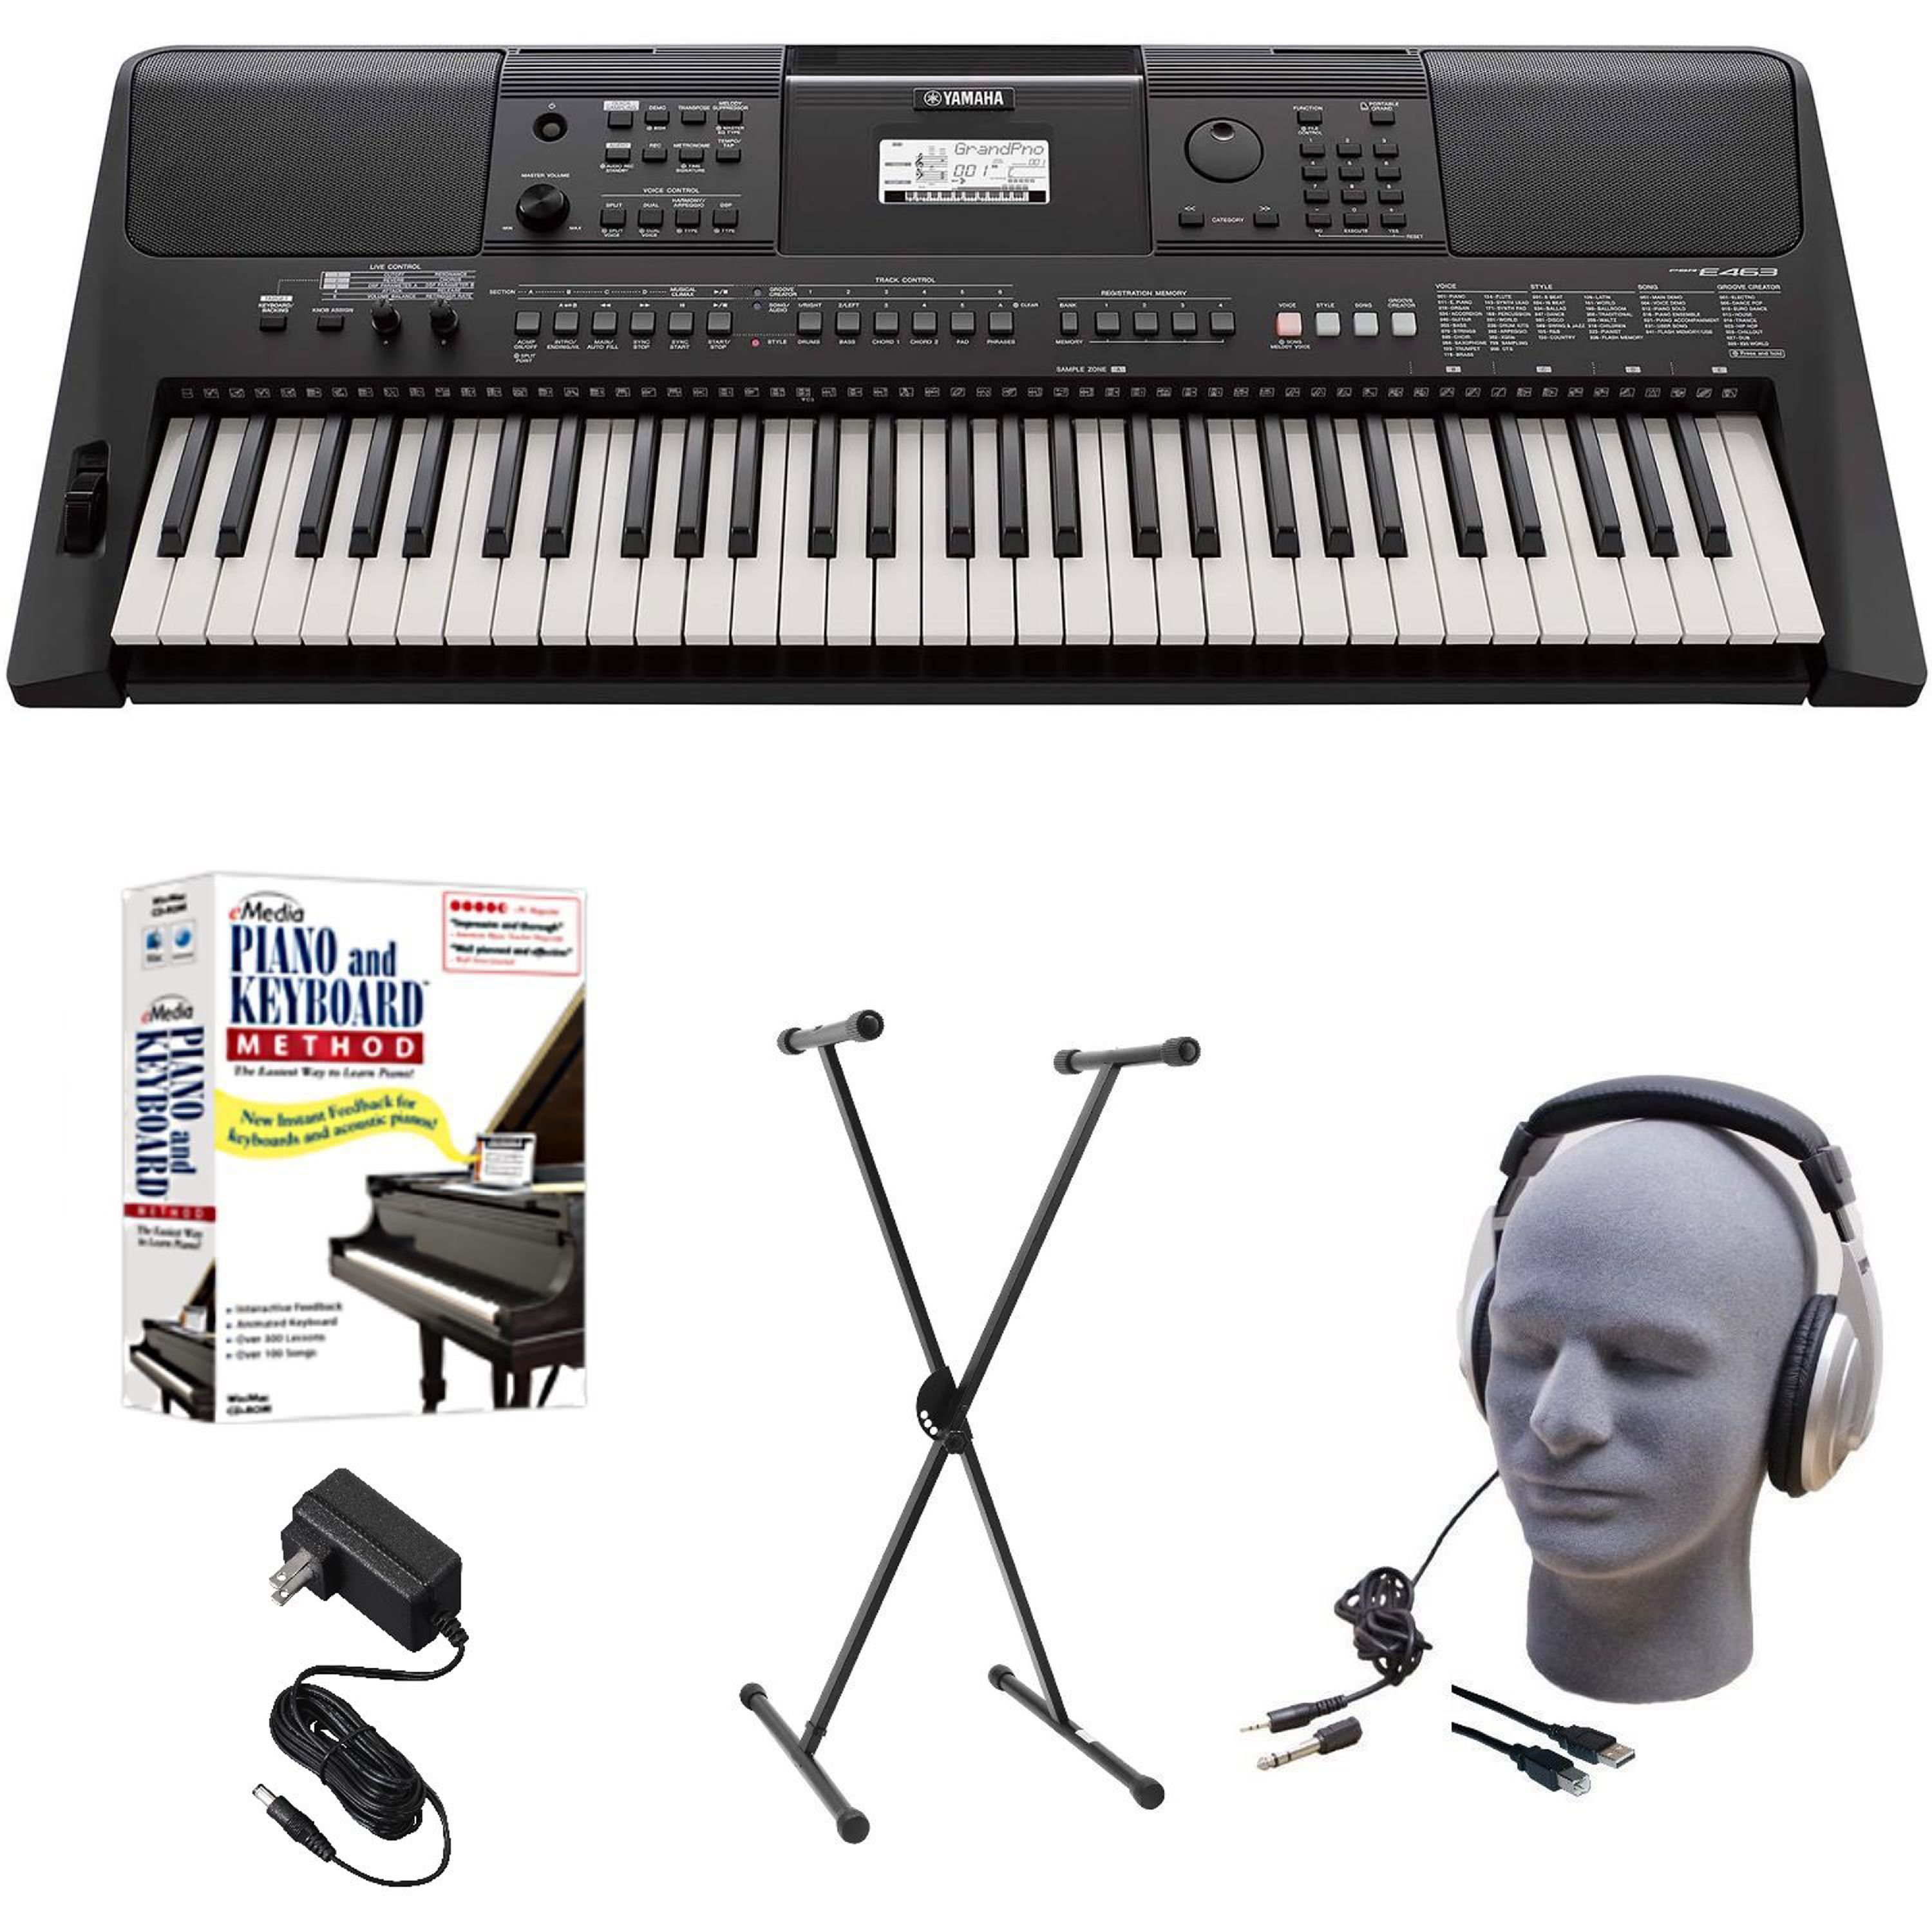 Yamaha PSR-E463 EPS Educational Keyboard Pack with Power Supply, X-Style Stand, Headphones, USB Cable, and Instructional Software